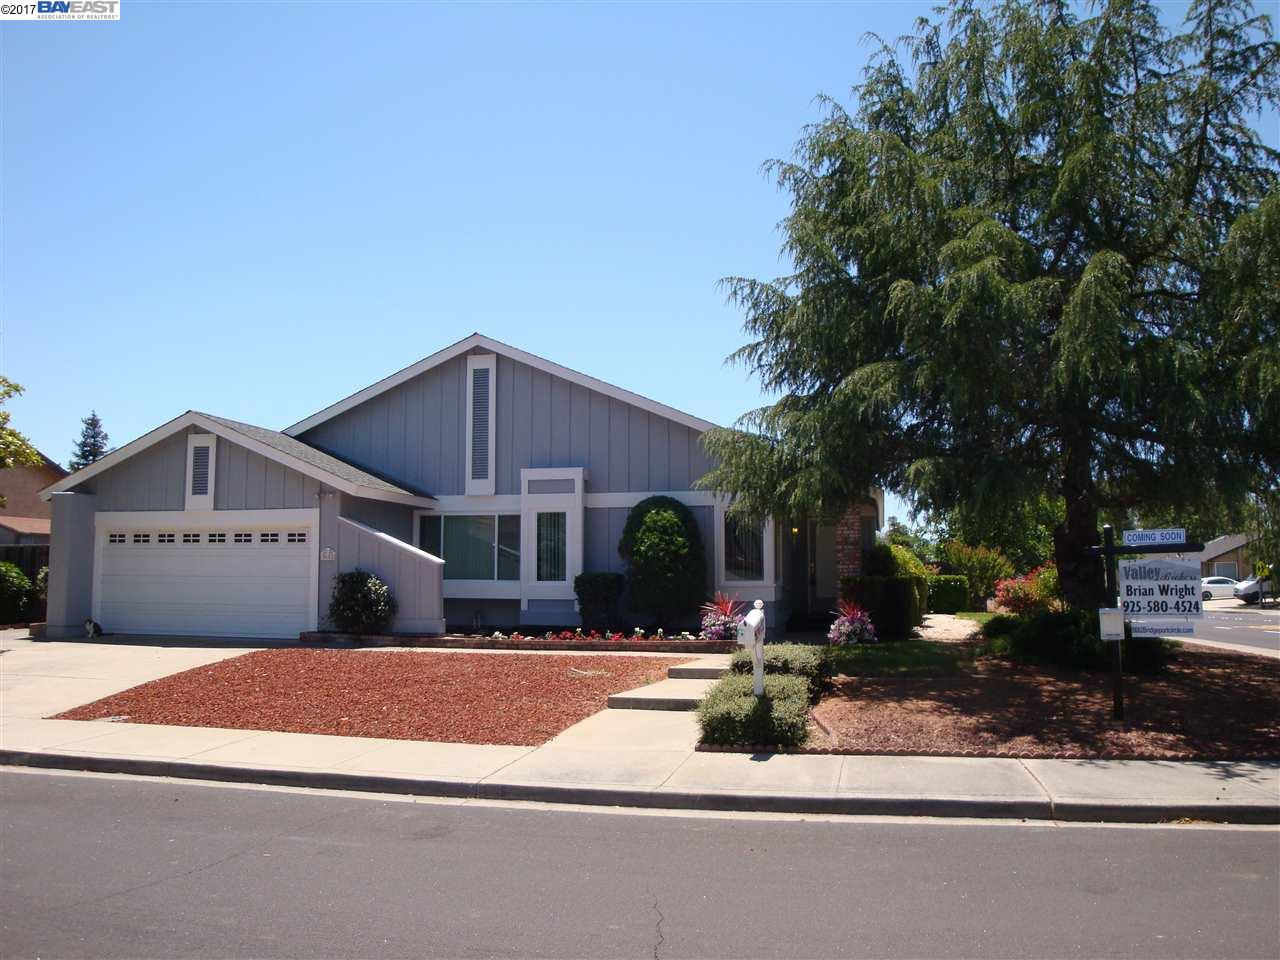 5682 Bridgeport Cir | LIVERMORE | 1524 | 94551